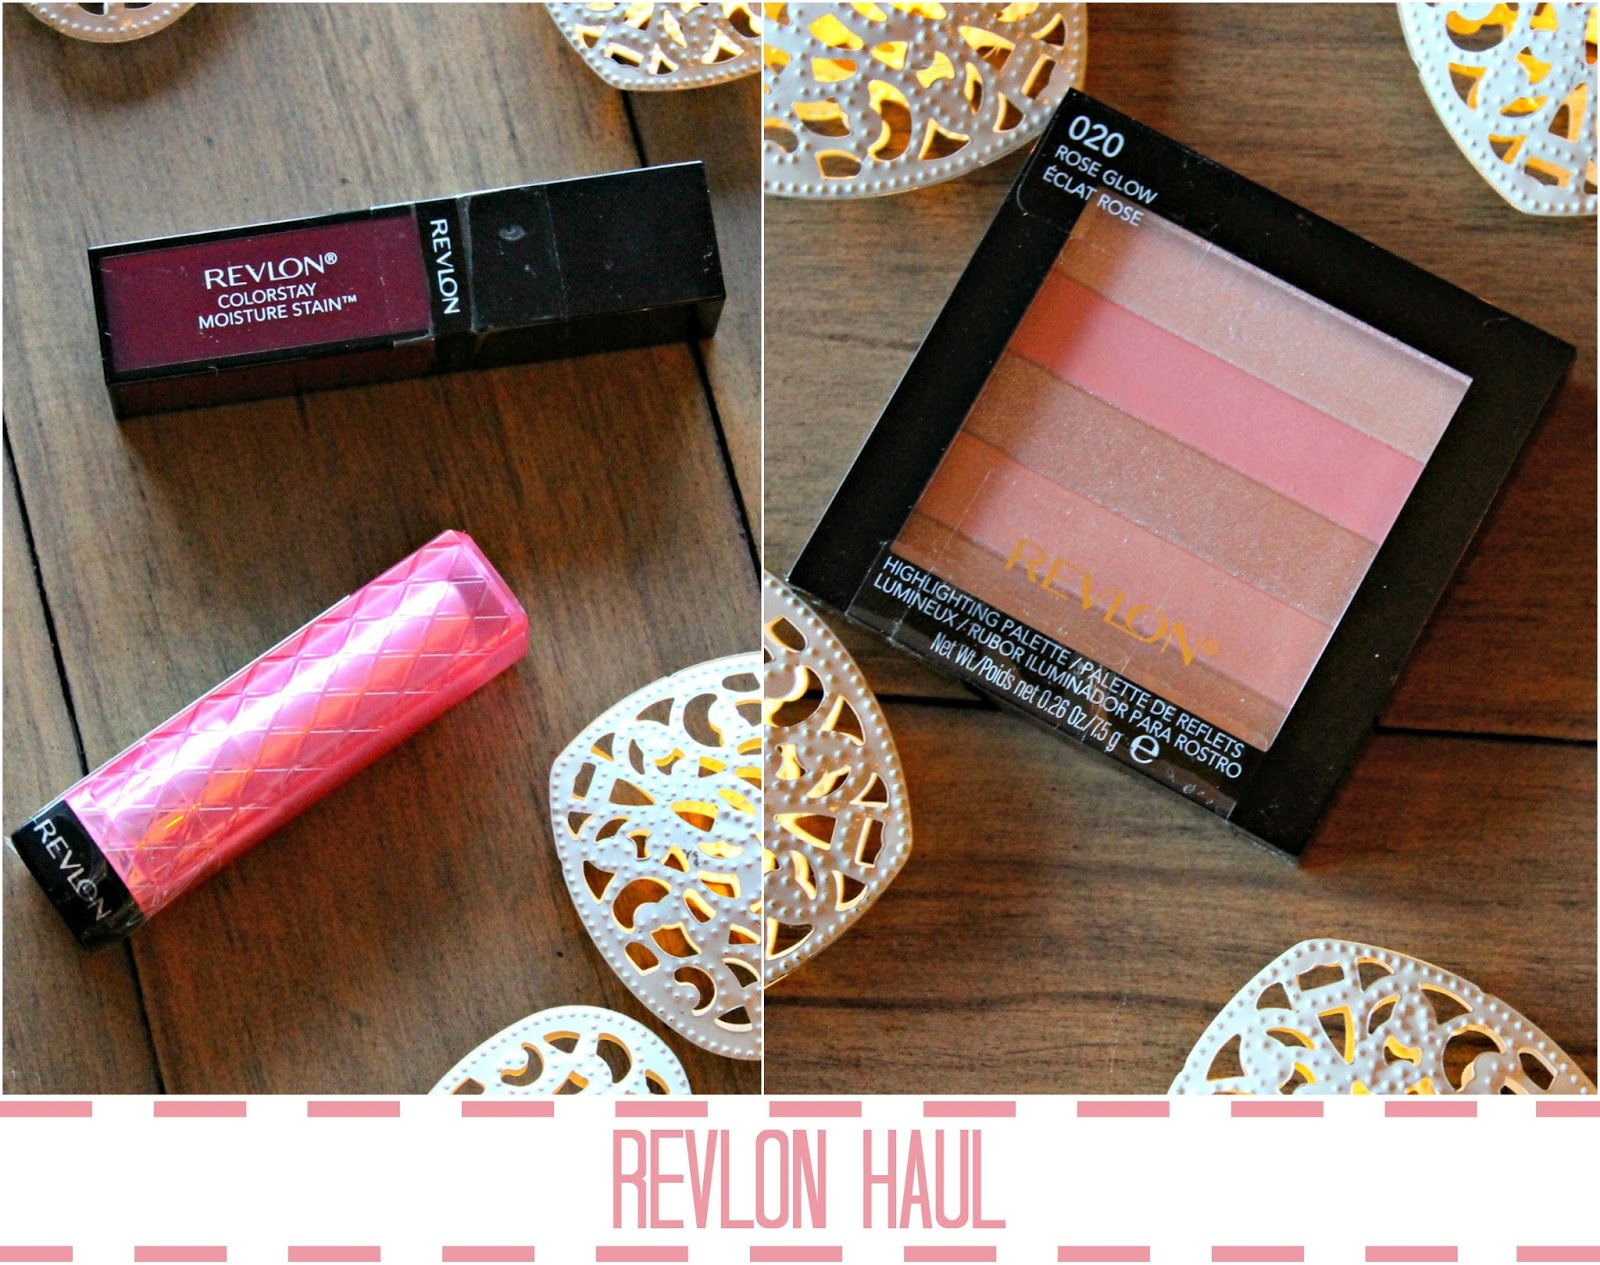 A haul of beauty products from Revlon